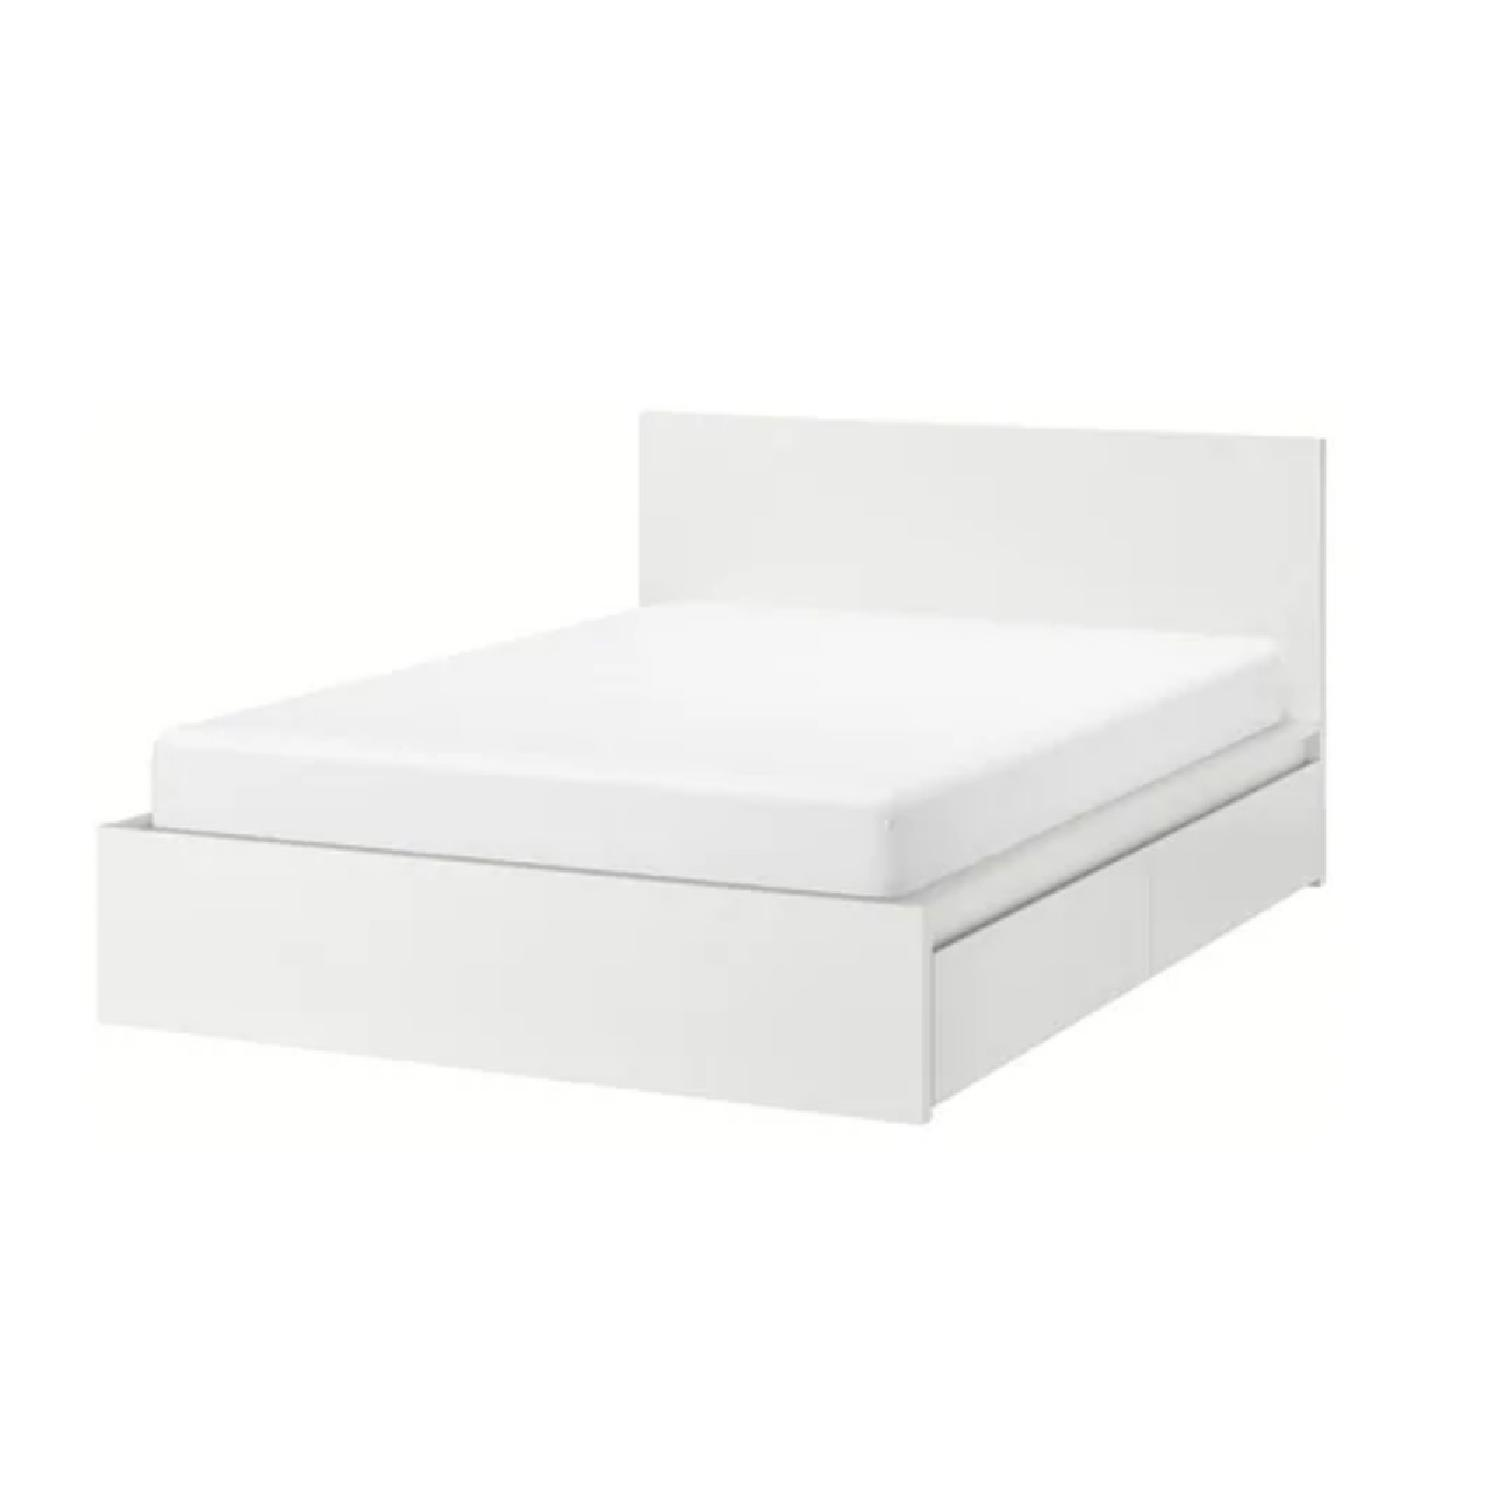 Superbe Ikea Malm White Queen Size Bed W/ 2 Storage Boxes ...